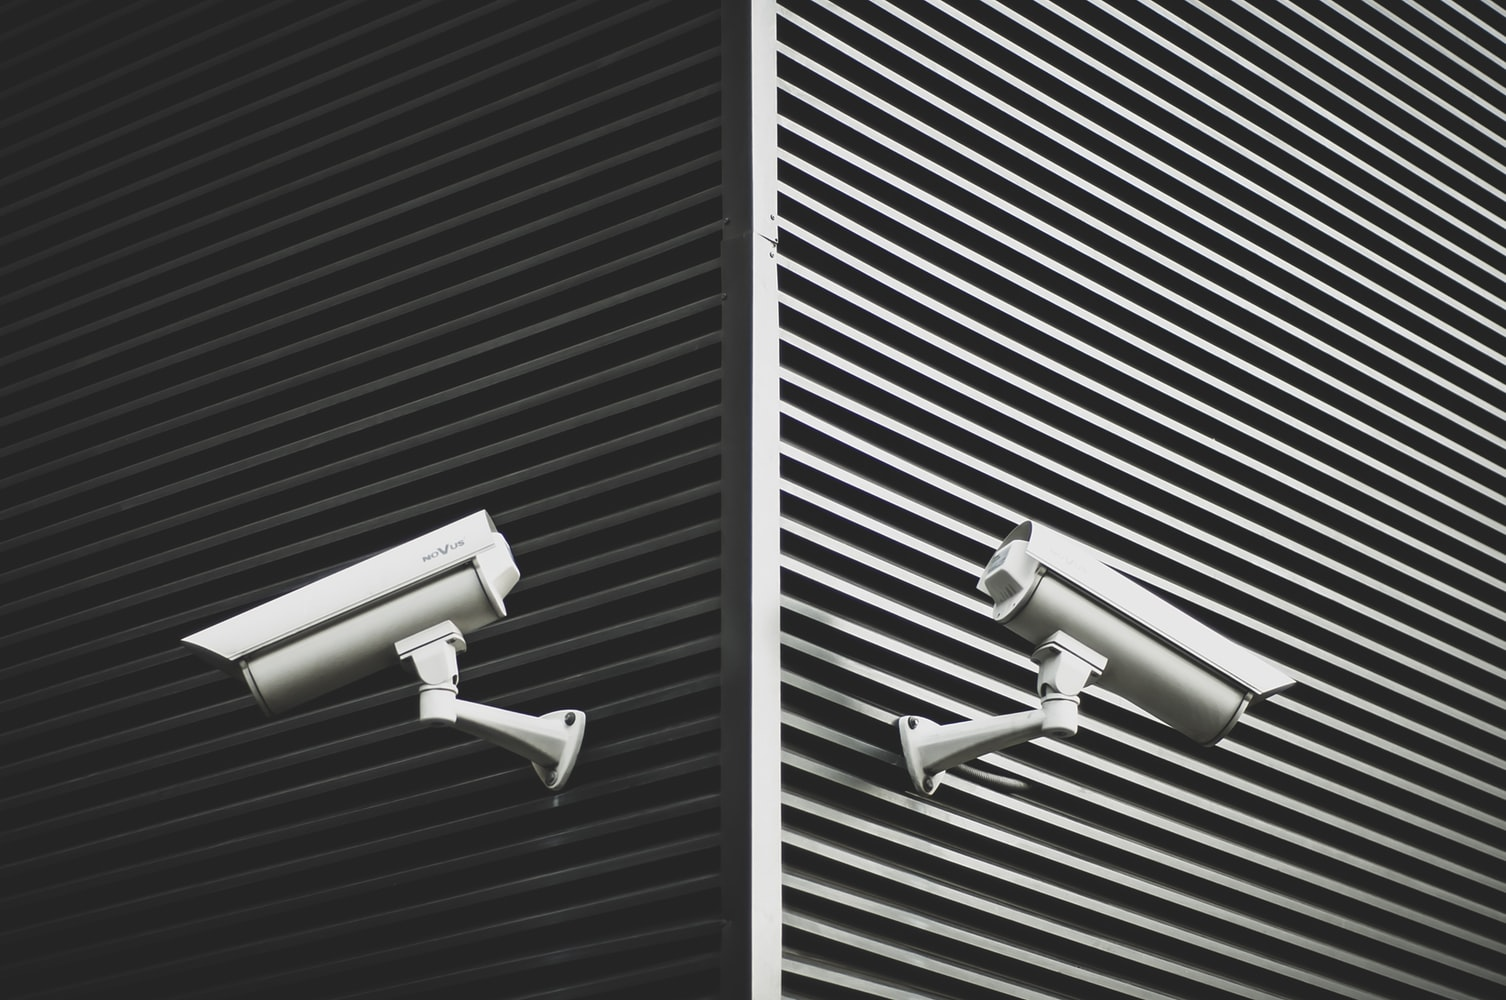 Benefits of Installing IoT-Based Security System for Home